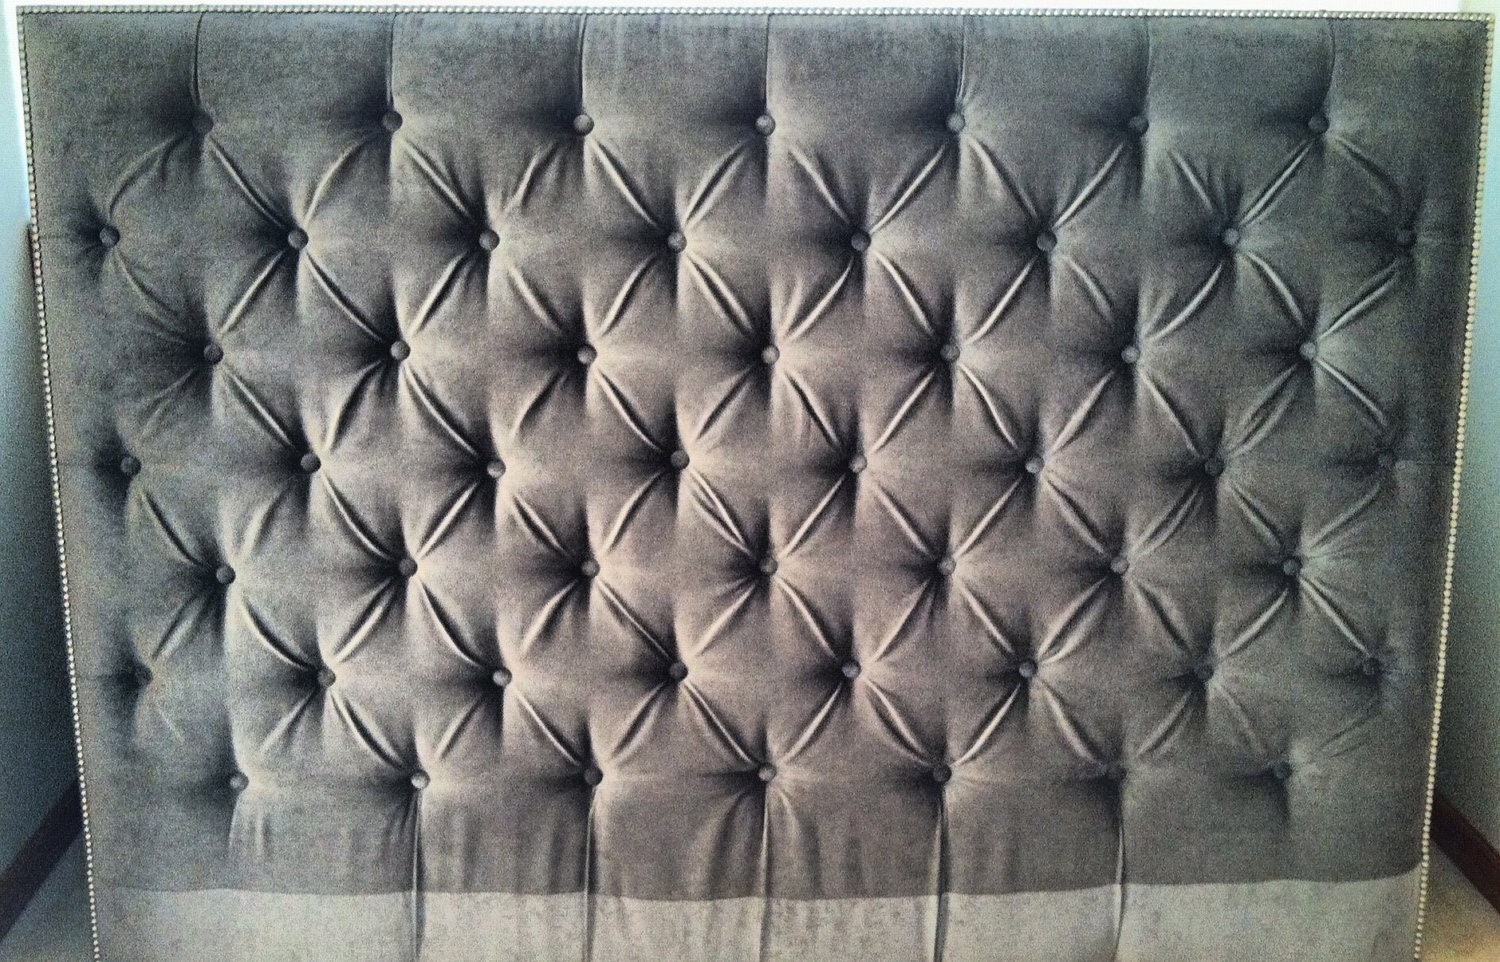 Diamond Tufted Vintage Velvet Headboard With Nailhead Border